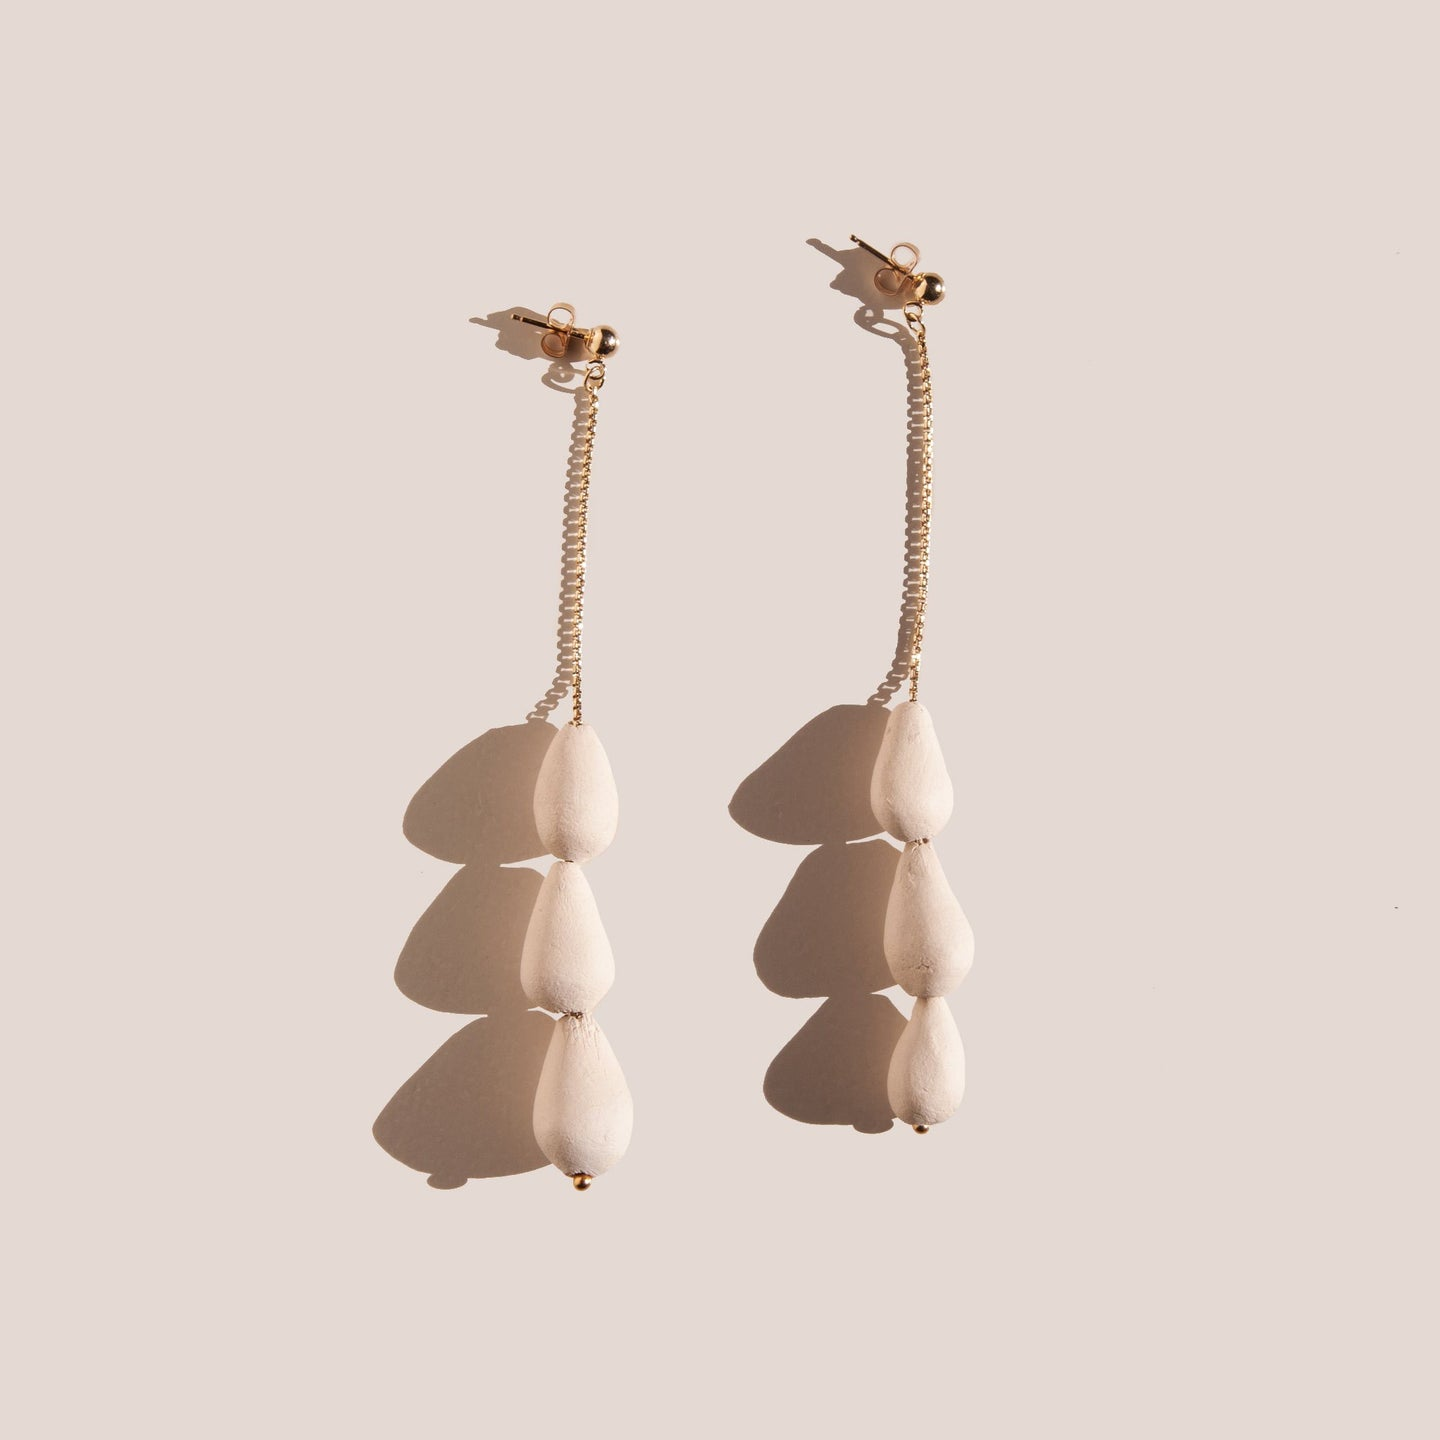 Eny Lee Parker - Tres Gotas Earrings, available at LCD.